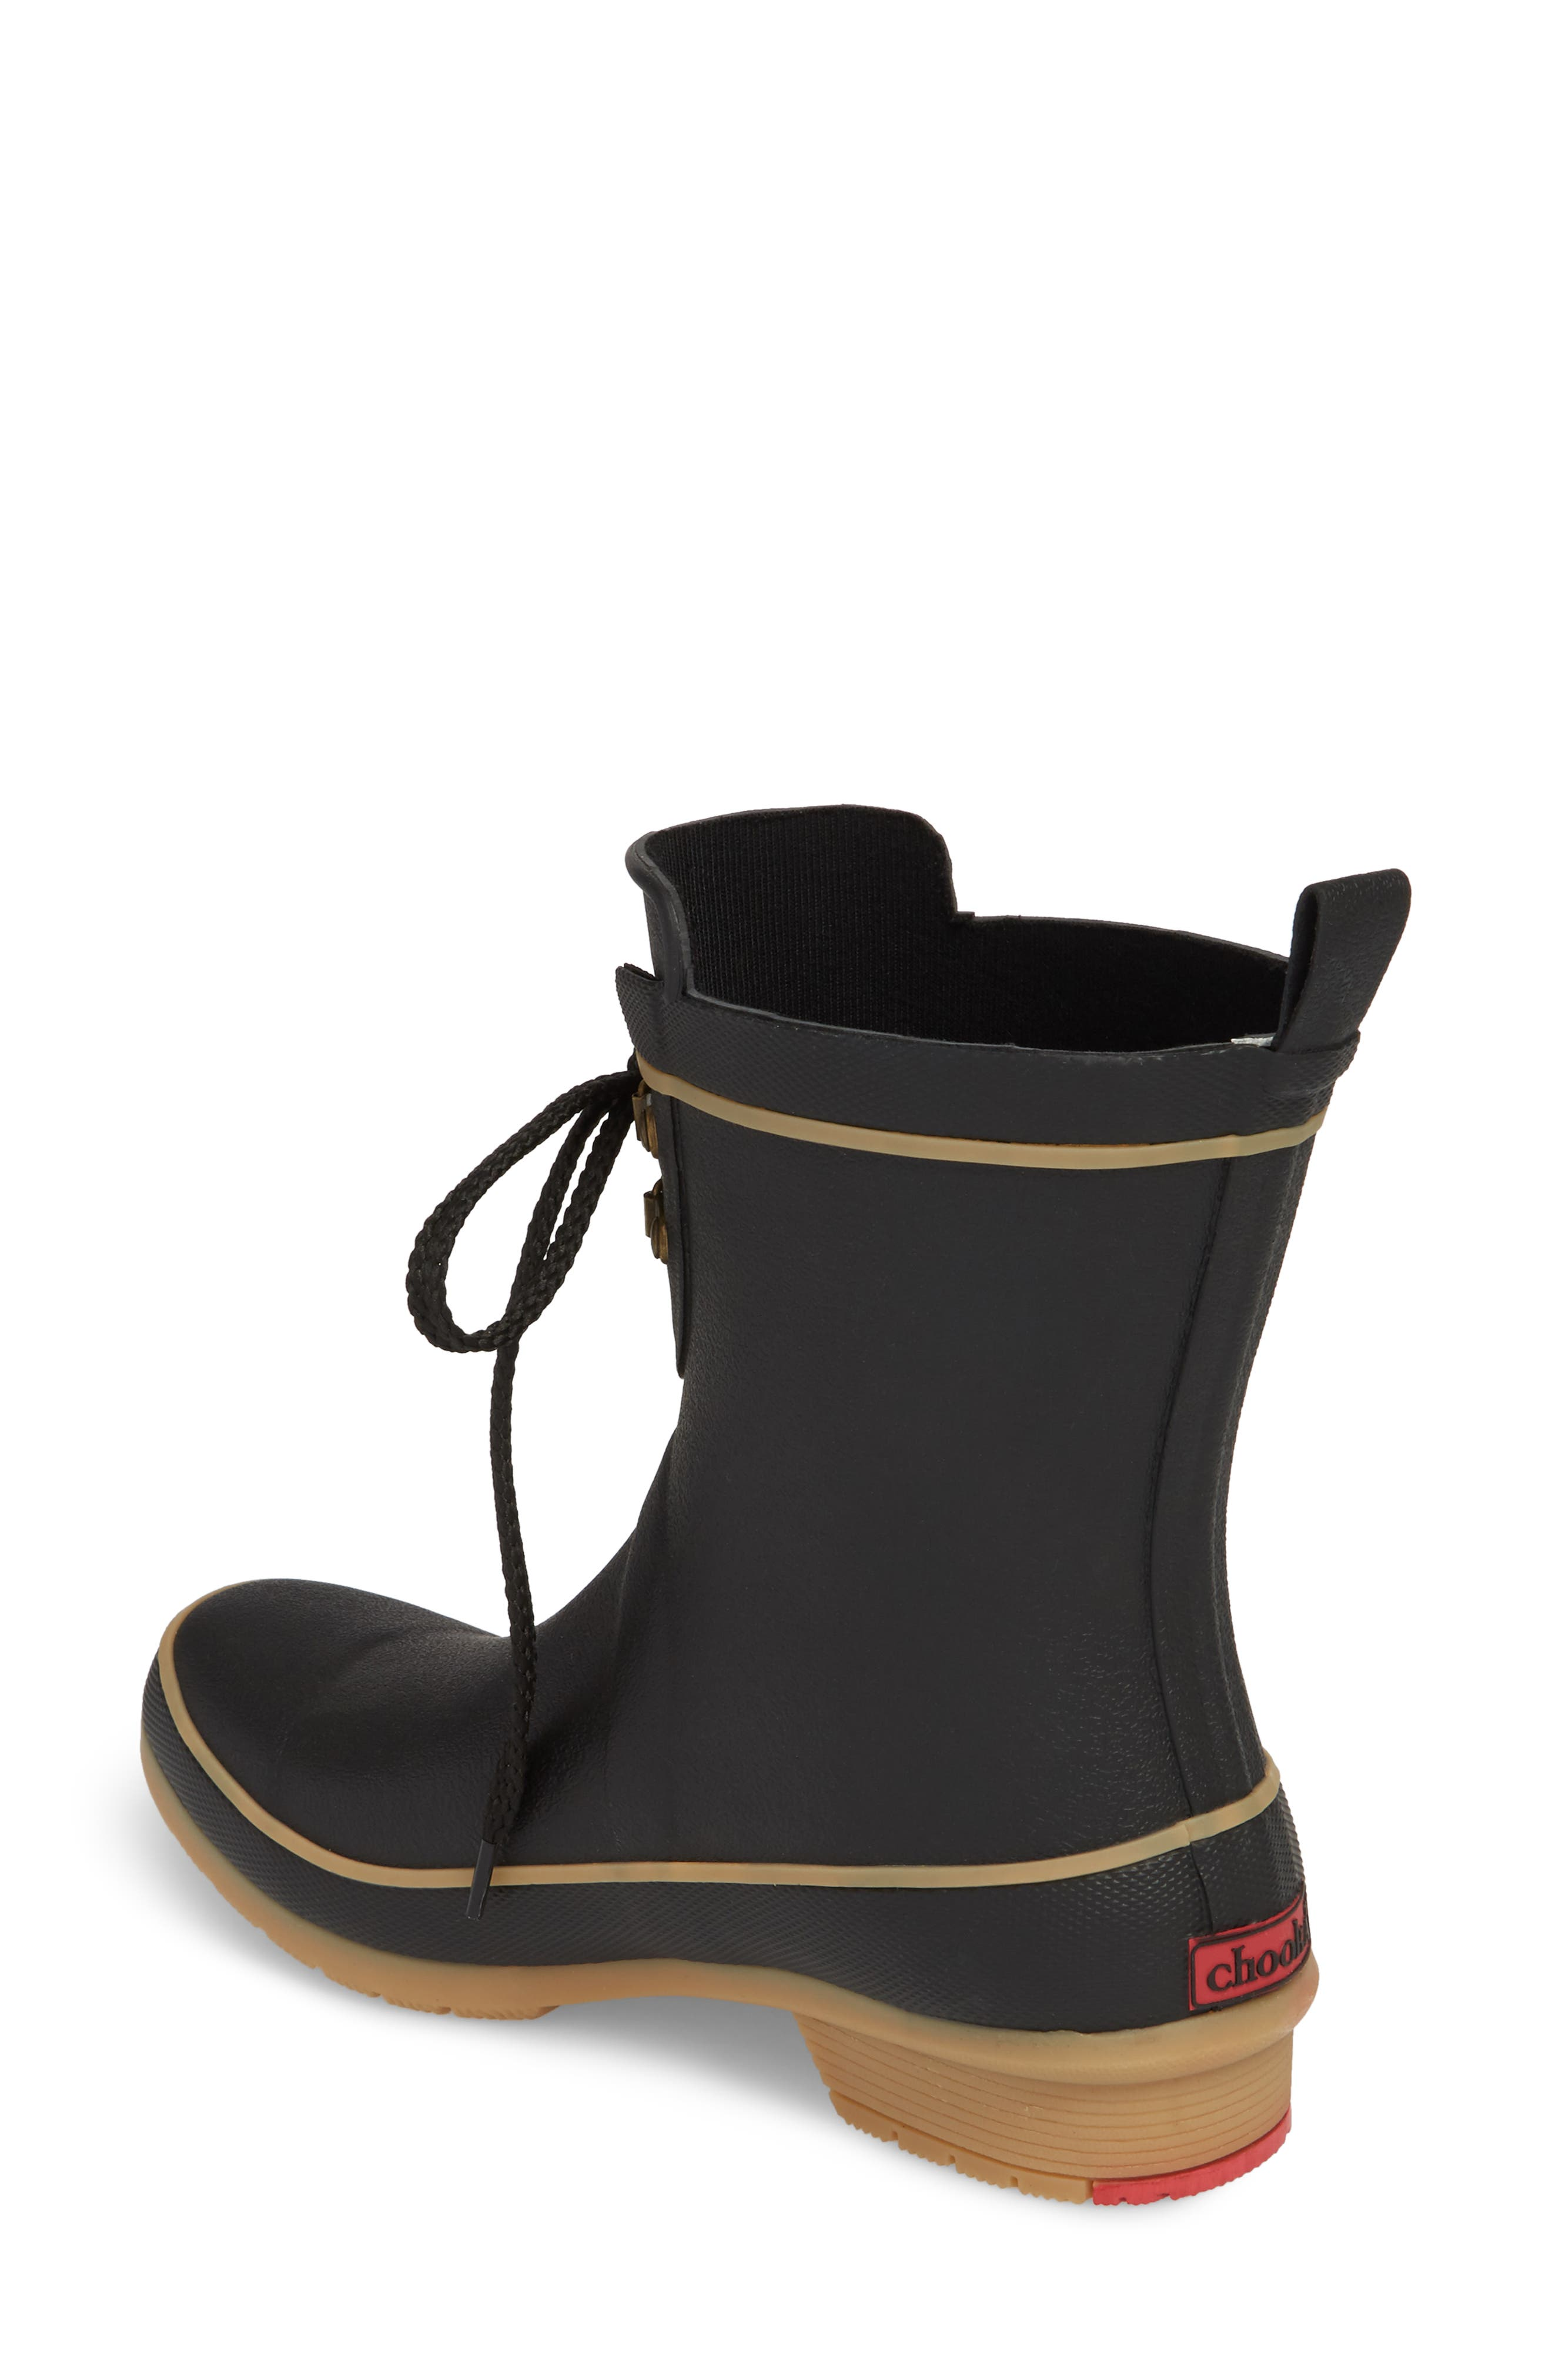 Whidbey Rain Boot,                             Alternate thumbnail 2, color,                             Black